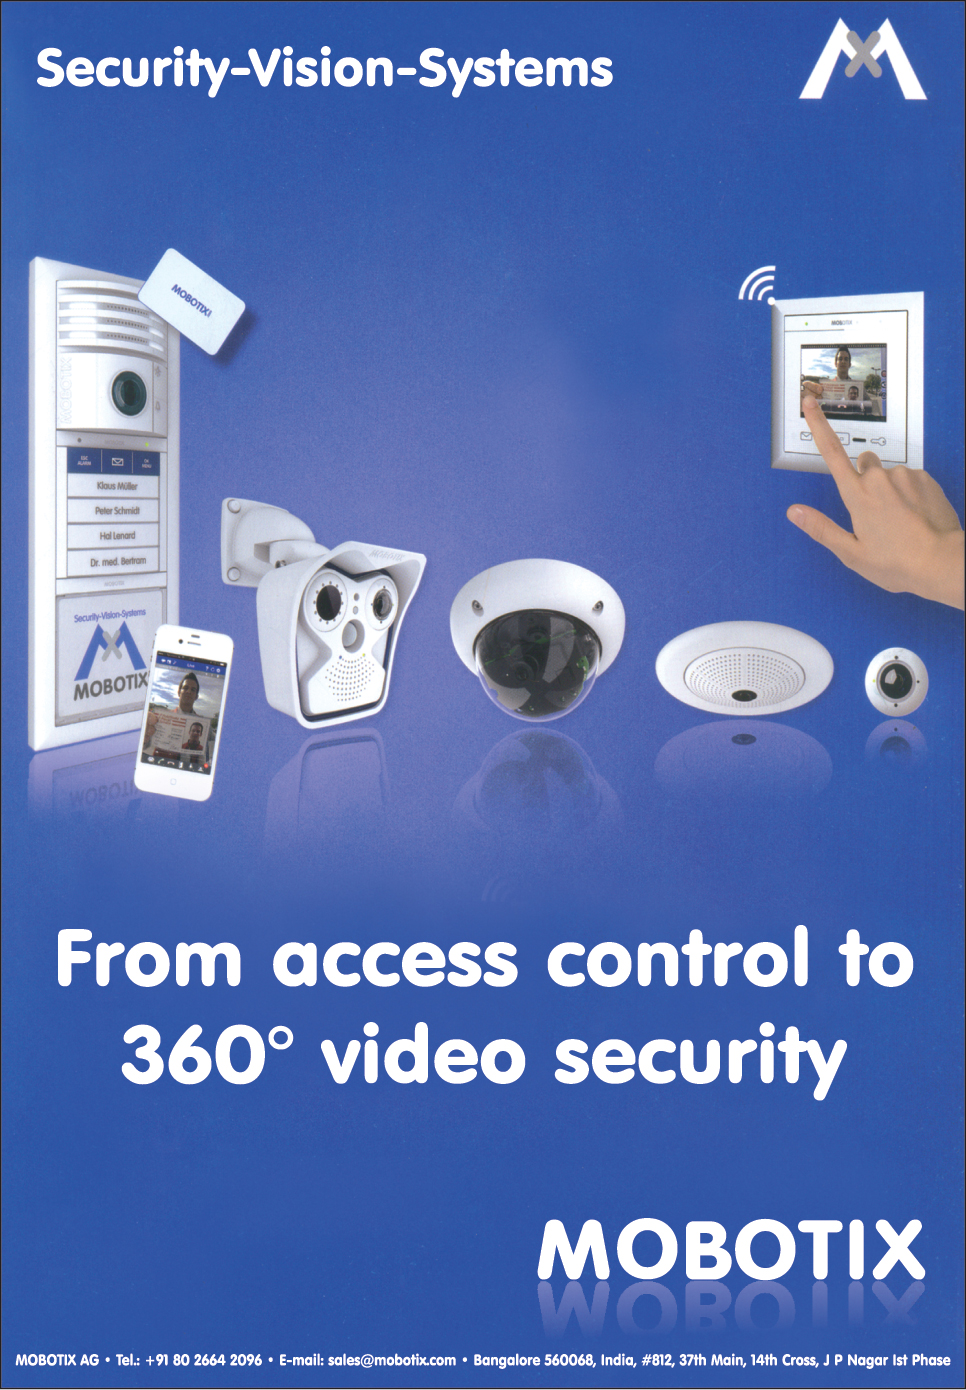 CCTV Cameras, Weatherproof Cameras, Indoor Cameras, Thermographic Cameras, Home Automation system, Video Door Station,Security Vision Systems